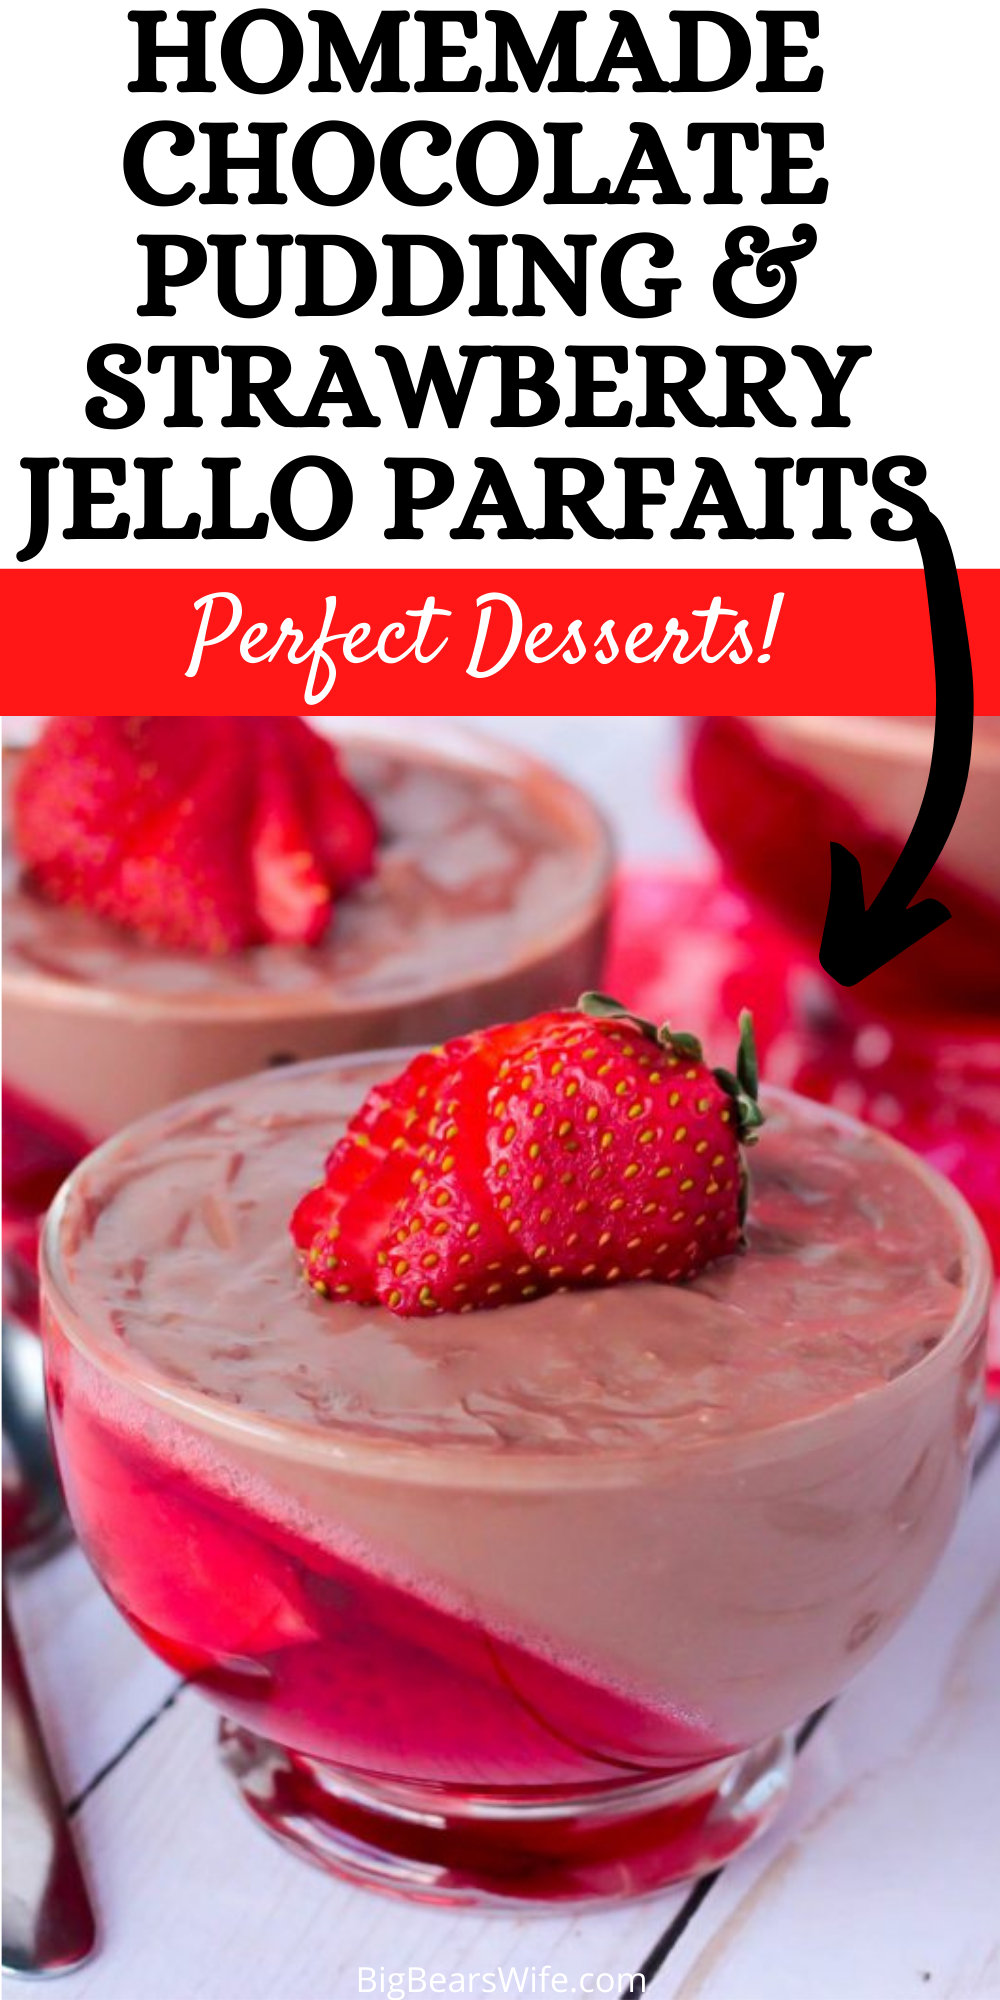 Chocolate Pudding and Strawberry Jello Parfaits are made up of wonderful homemade chocolate pudding on one side of the glass and and strawberry Jello with fresh strawberry slices on the other.This easy dessert recipe is perfect for chefs of all ages. Impress your family and friend with this beautiful sweet treat that can be created by anyone! via @bigbearswife